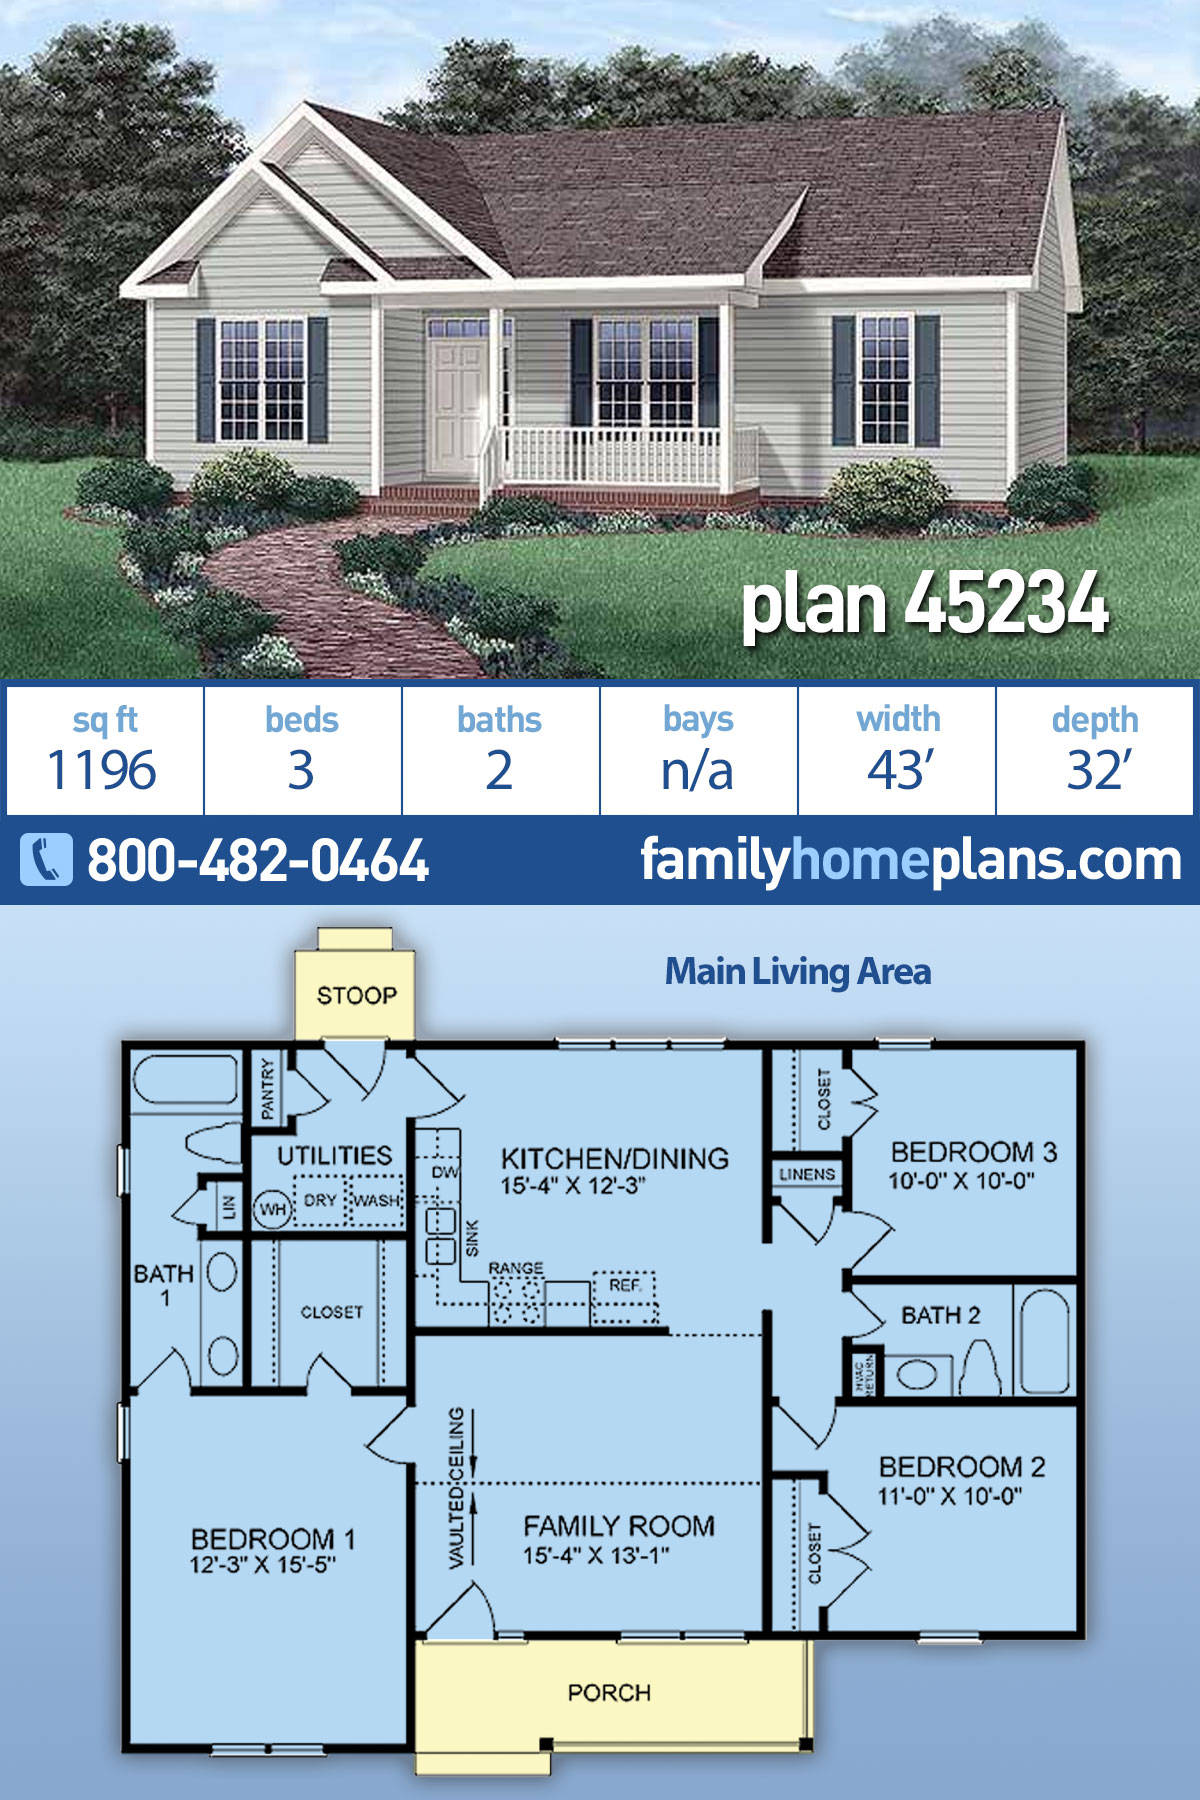 Ranch House Plan 45234 with 3 Beds, 2 Baths